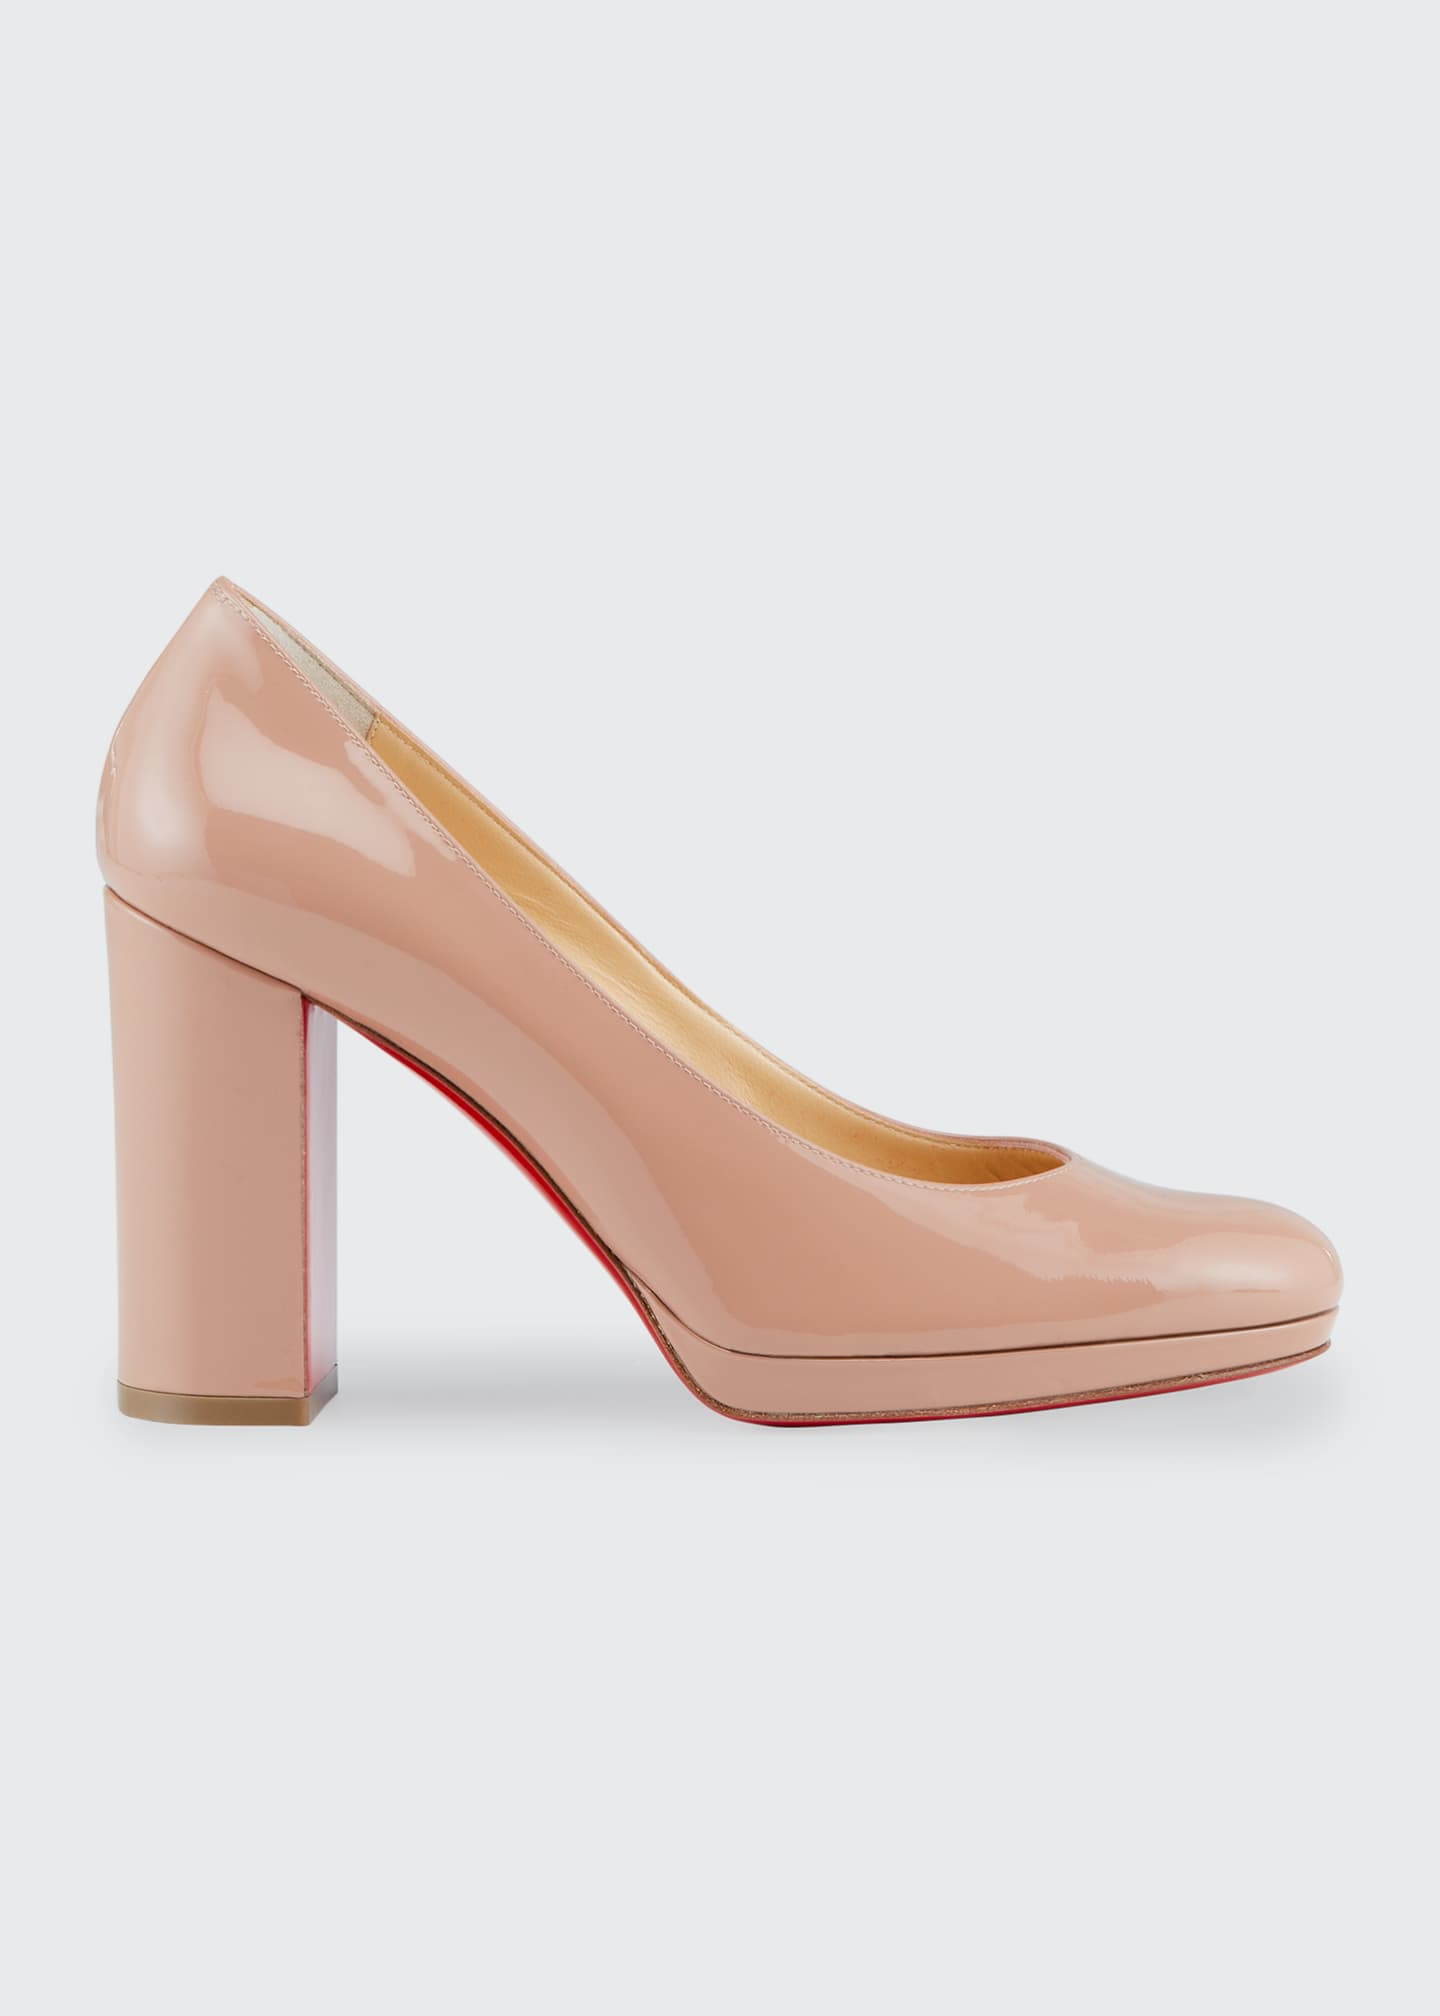 Image 1 of 4: Kabetts Patent Red Sole Pumps